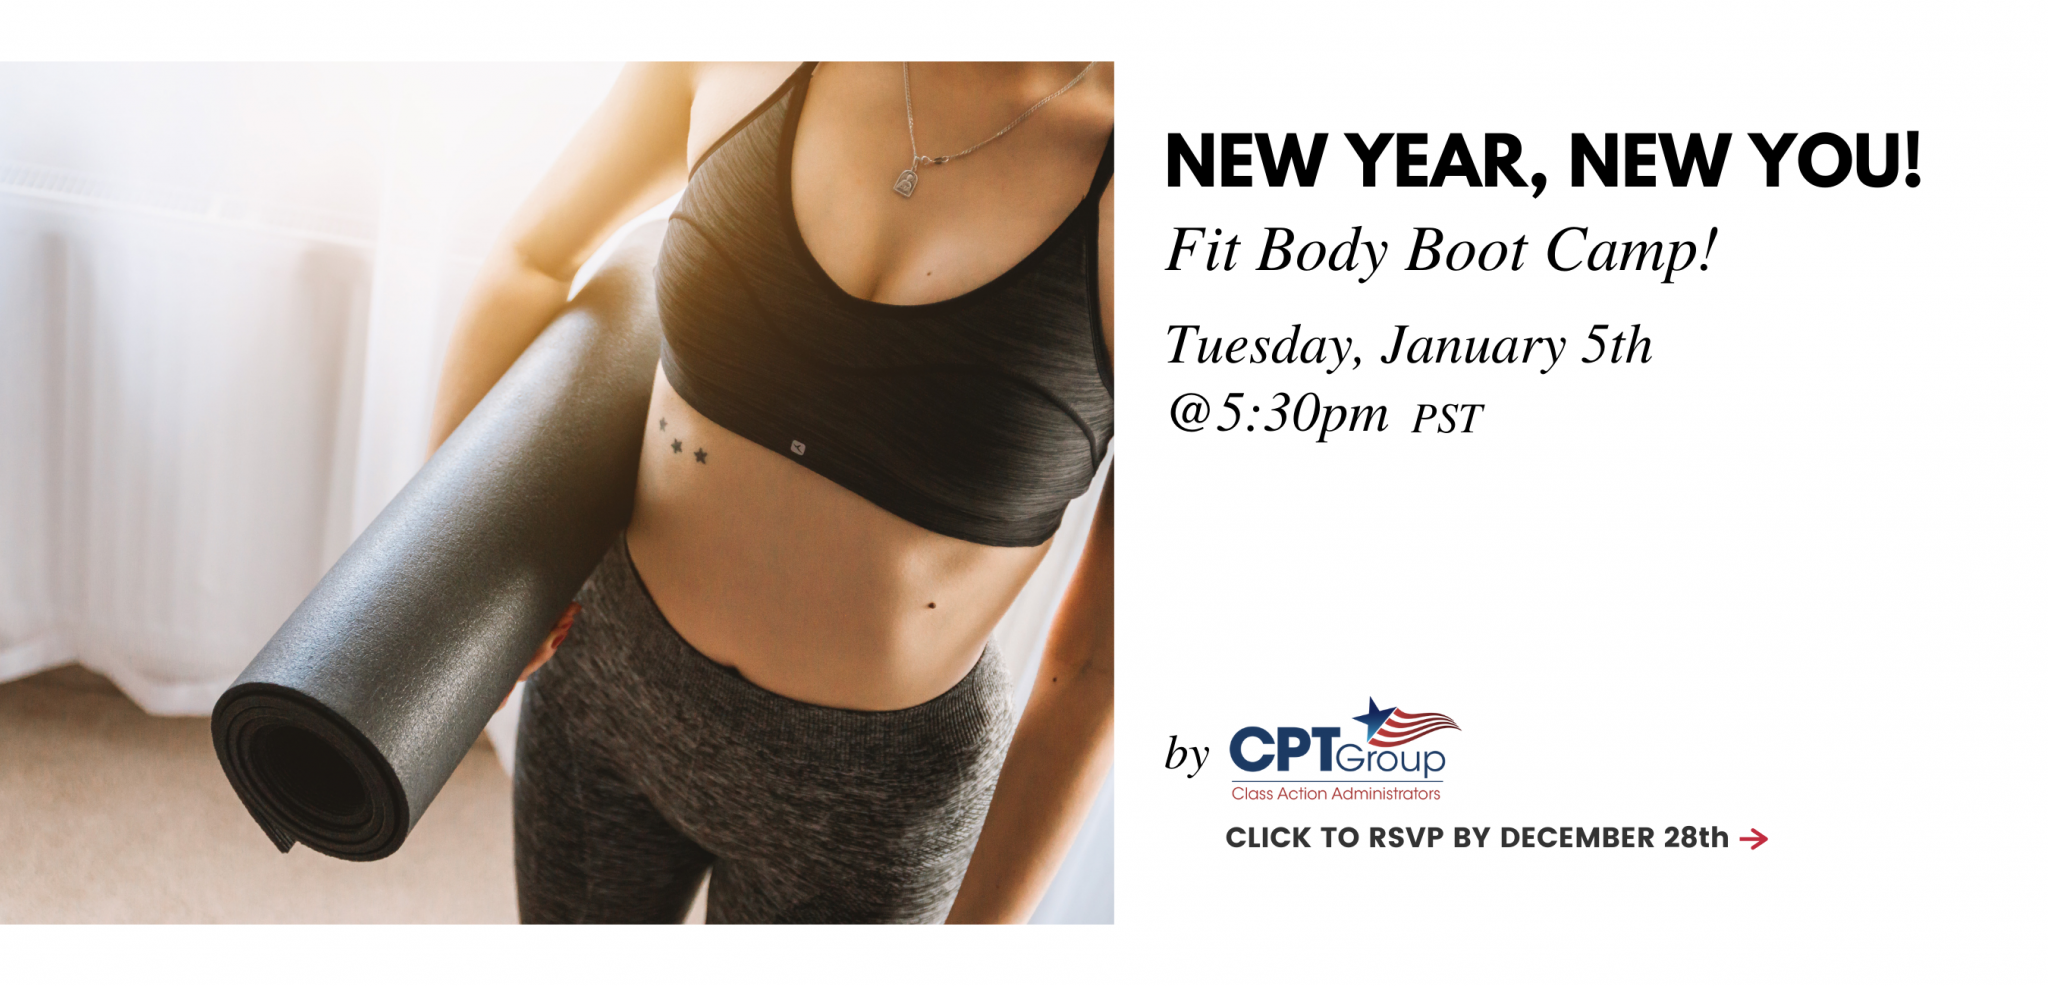 New Year, New You! Fit Body Boot Camp Tuesday, January 5th @ 5:30pm PST